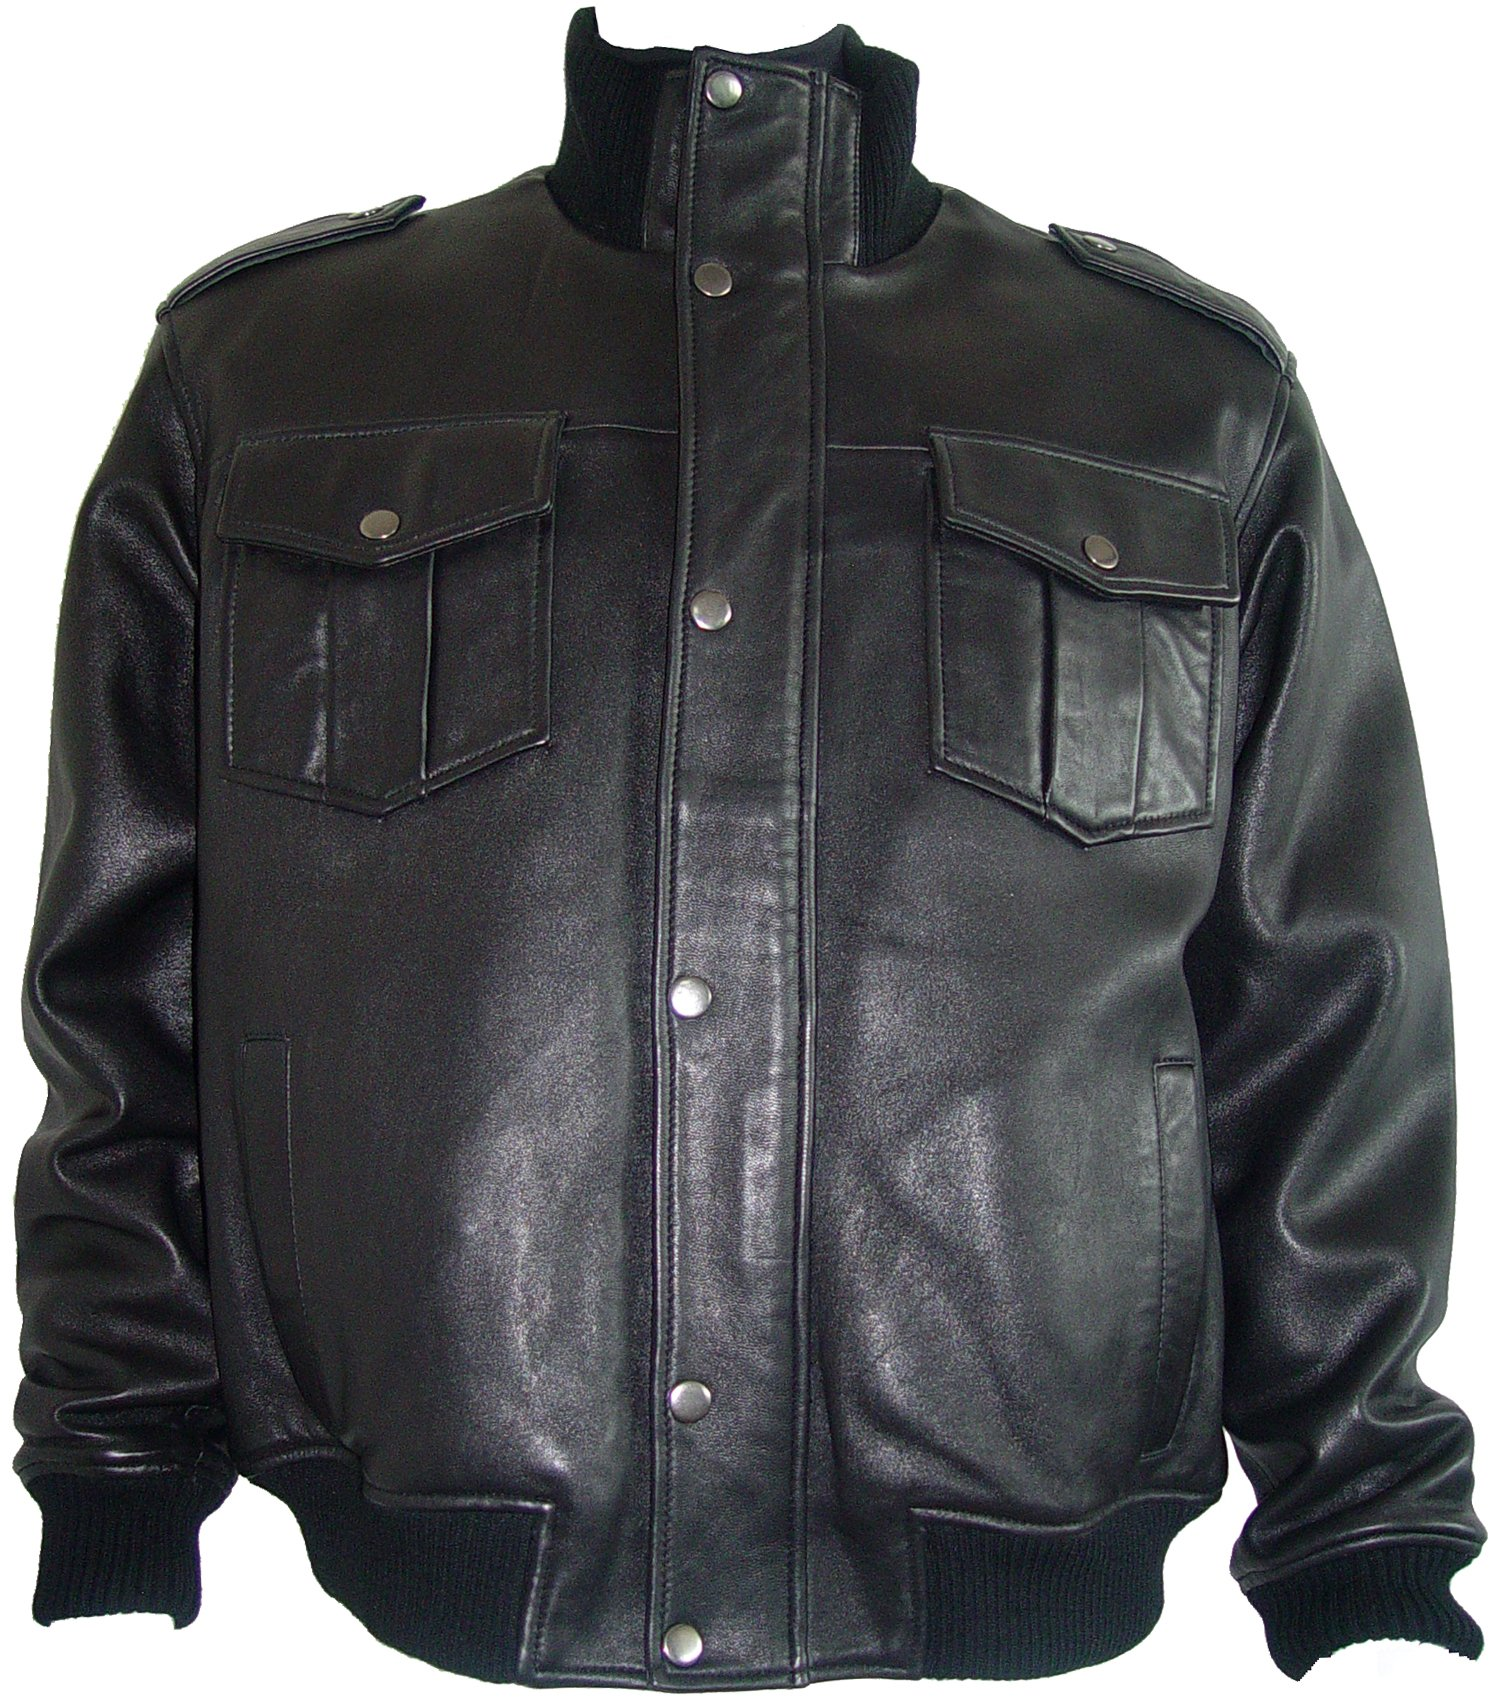 Paccilo 1010 Fine Urban Black Leather Mens Jackets Big Size 4XL